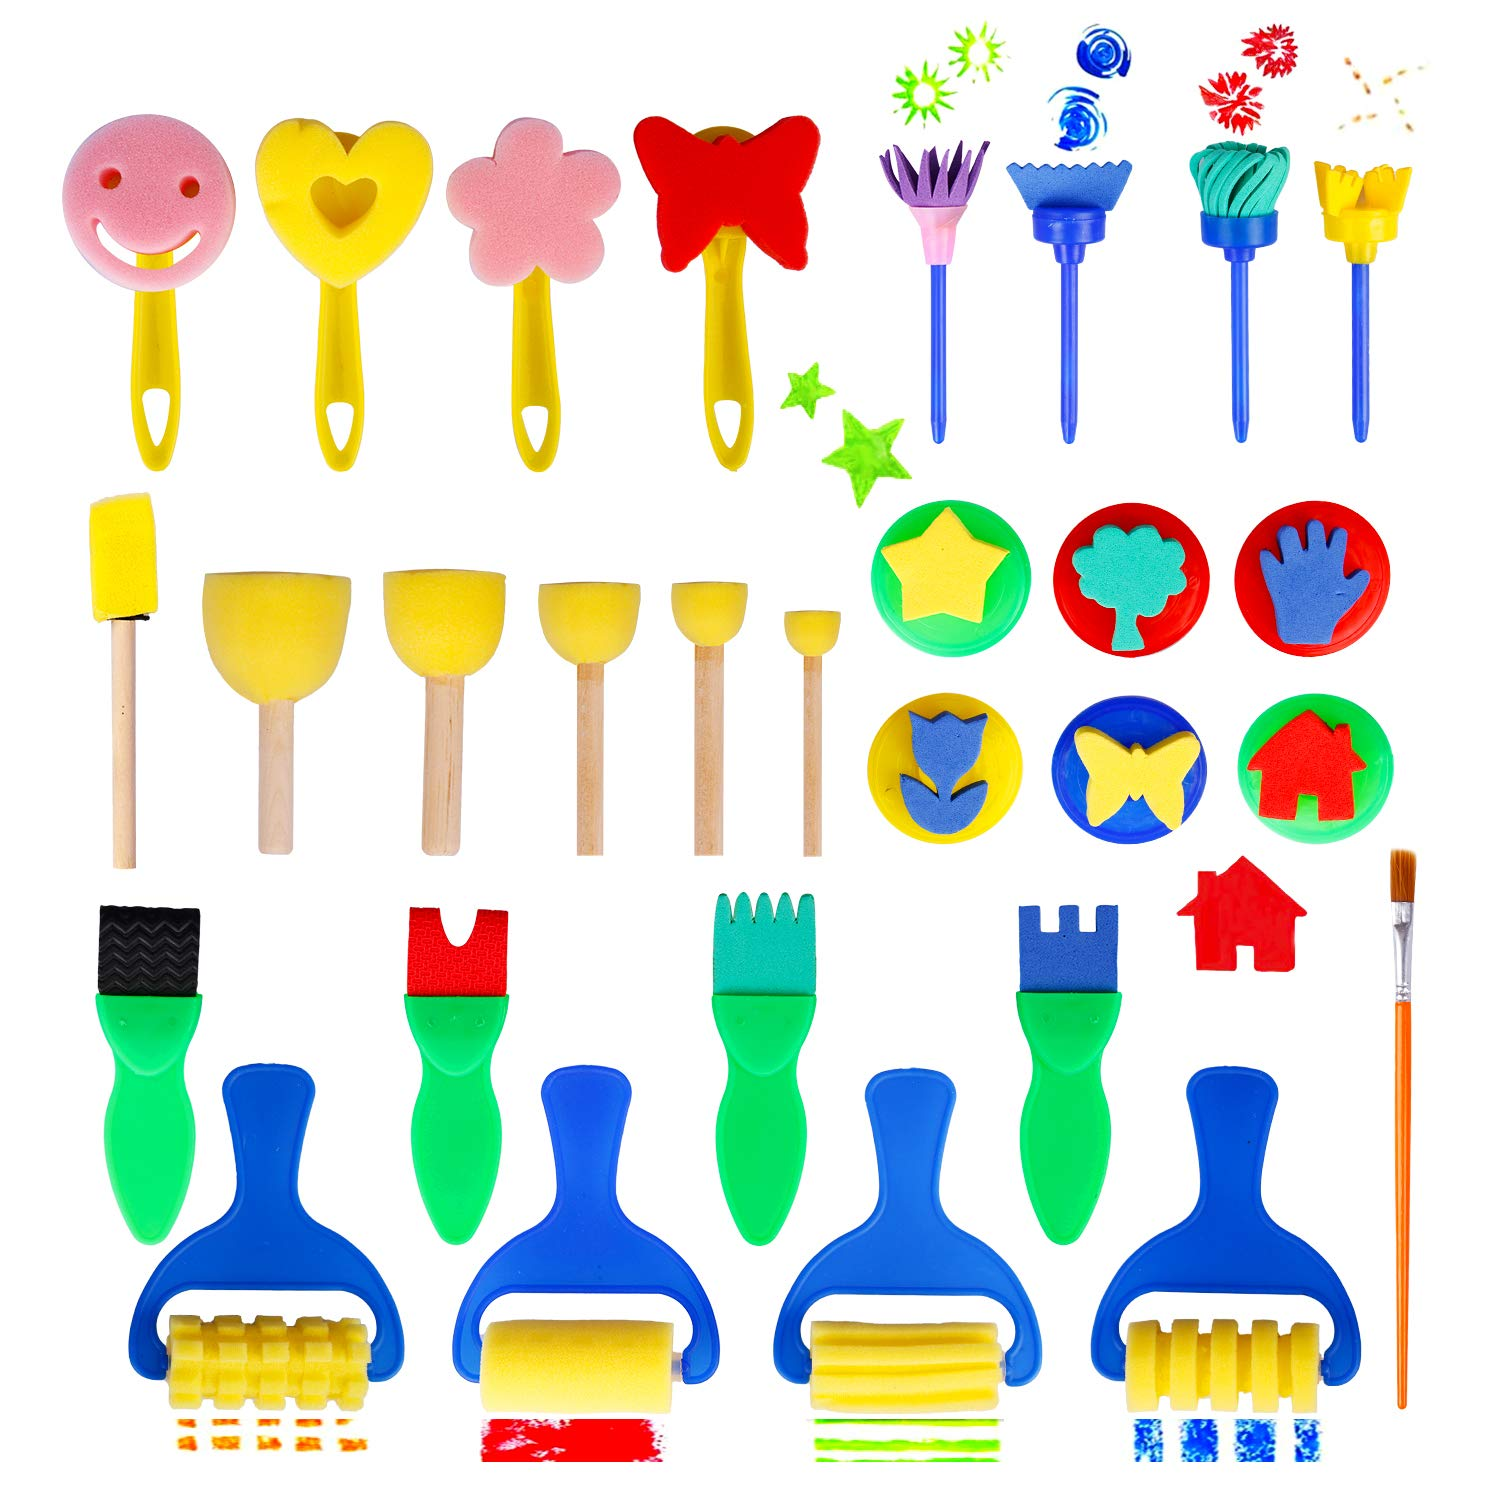 Hakkin 29 Pcs Washable Paint Brushes Set Drawing Tools Sponge Painting Kits Early DIY Learning Craft Art Supplies for Kids Toddlers by Hakkin